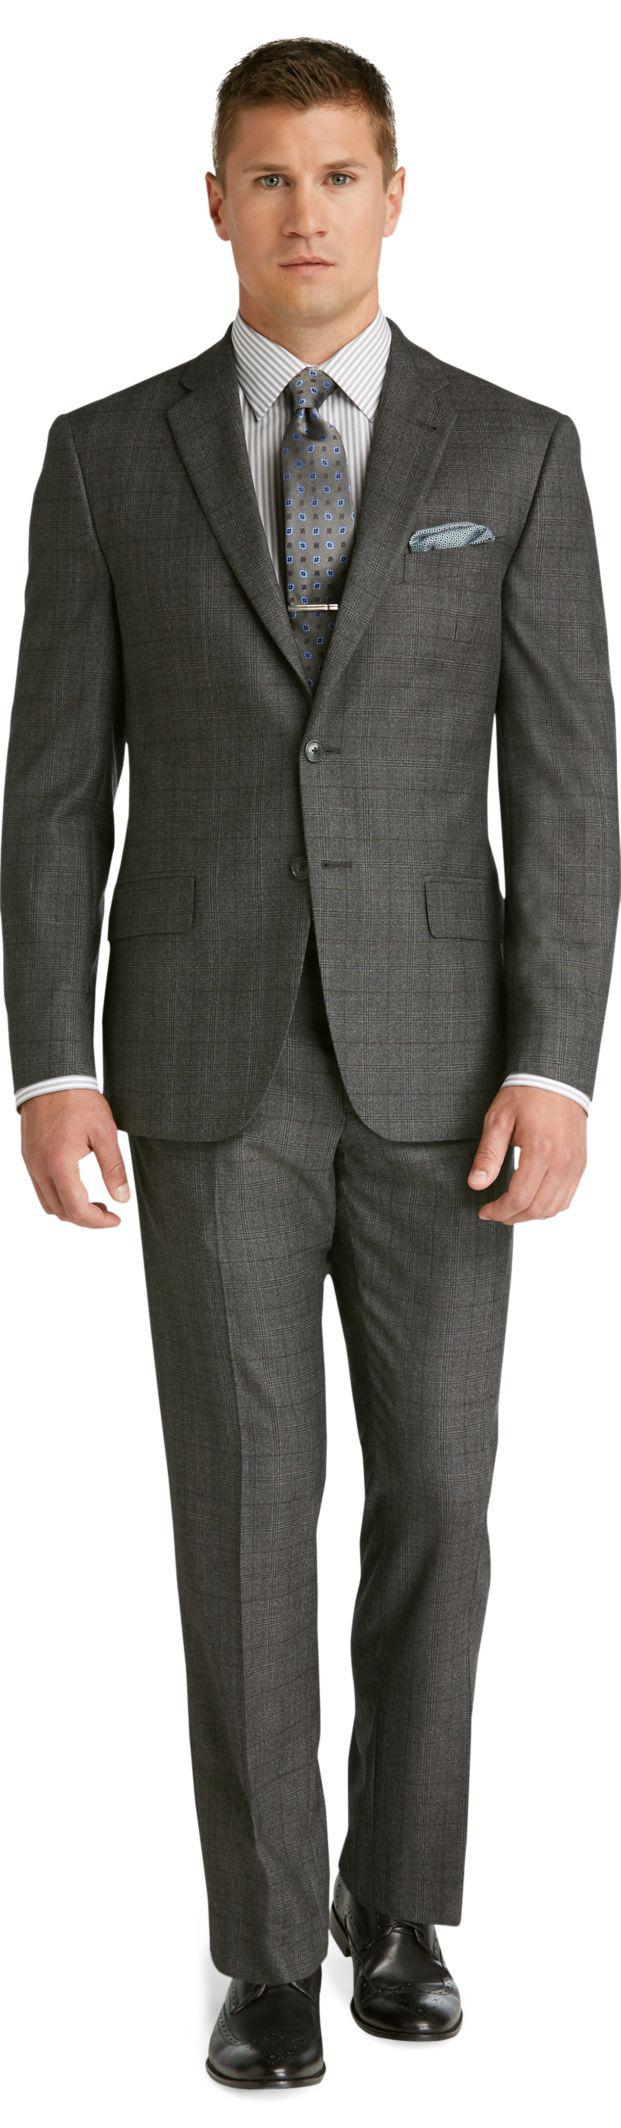 Jos a bank reserve 2 button plain front slim fit dark for Jos a bank slim fit vs tailored fit shirts